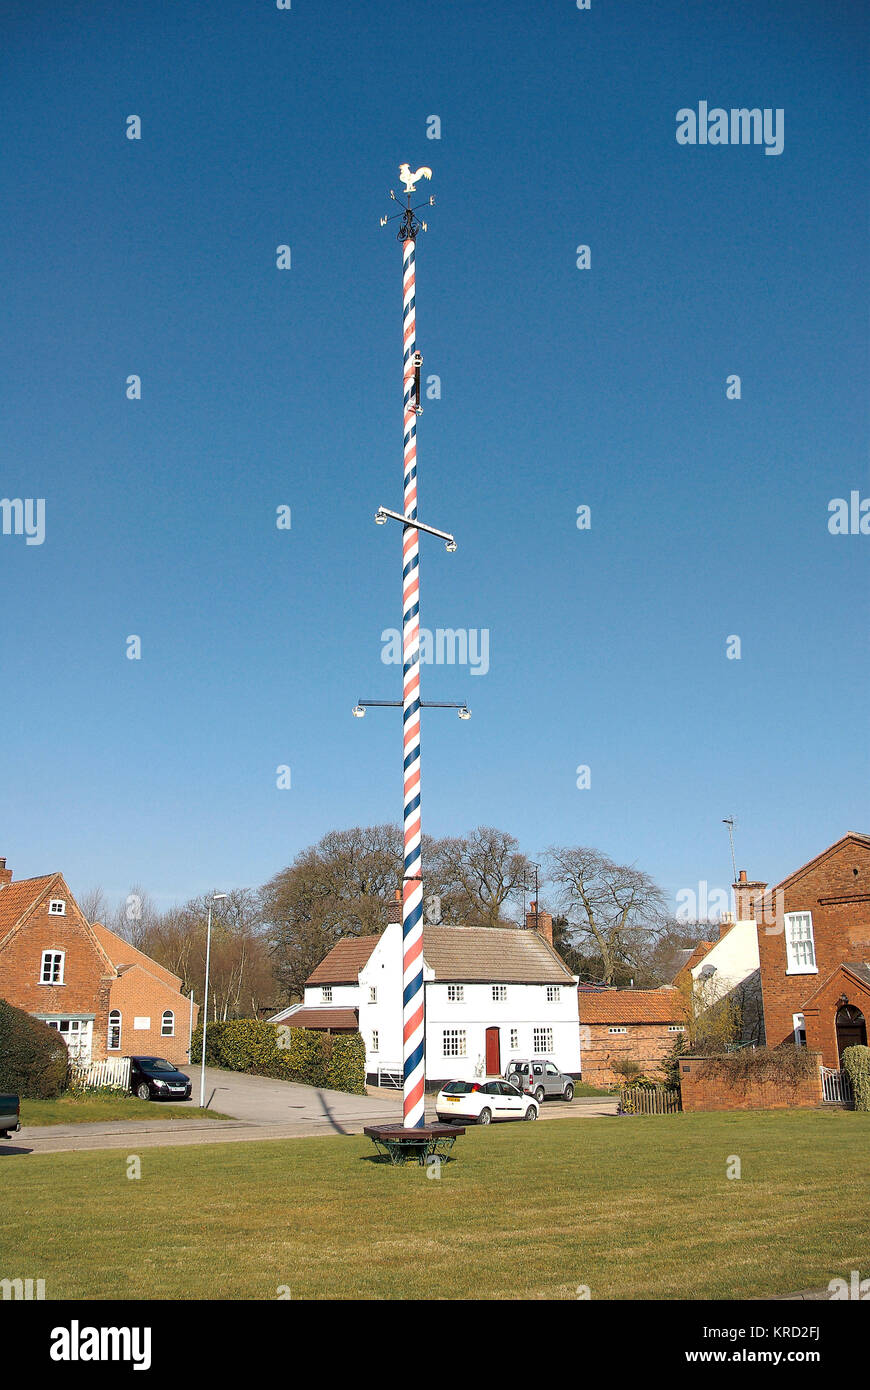 The permanent maypole on the village green at Wellow, Nottinghamshire.  The village has associations with Robin - Stock Image